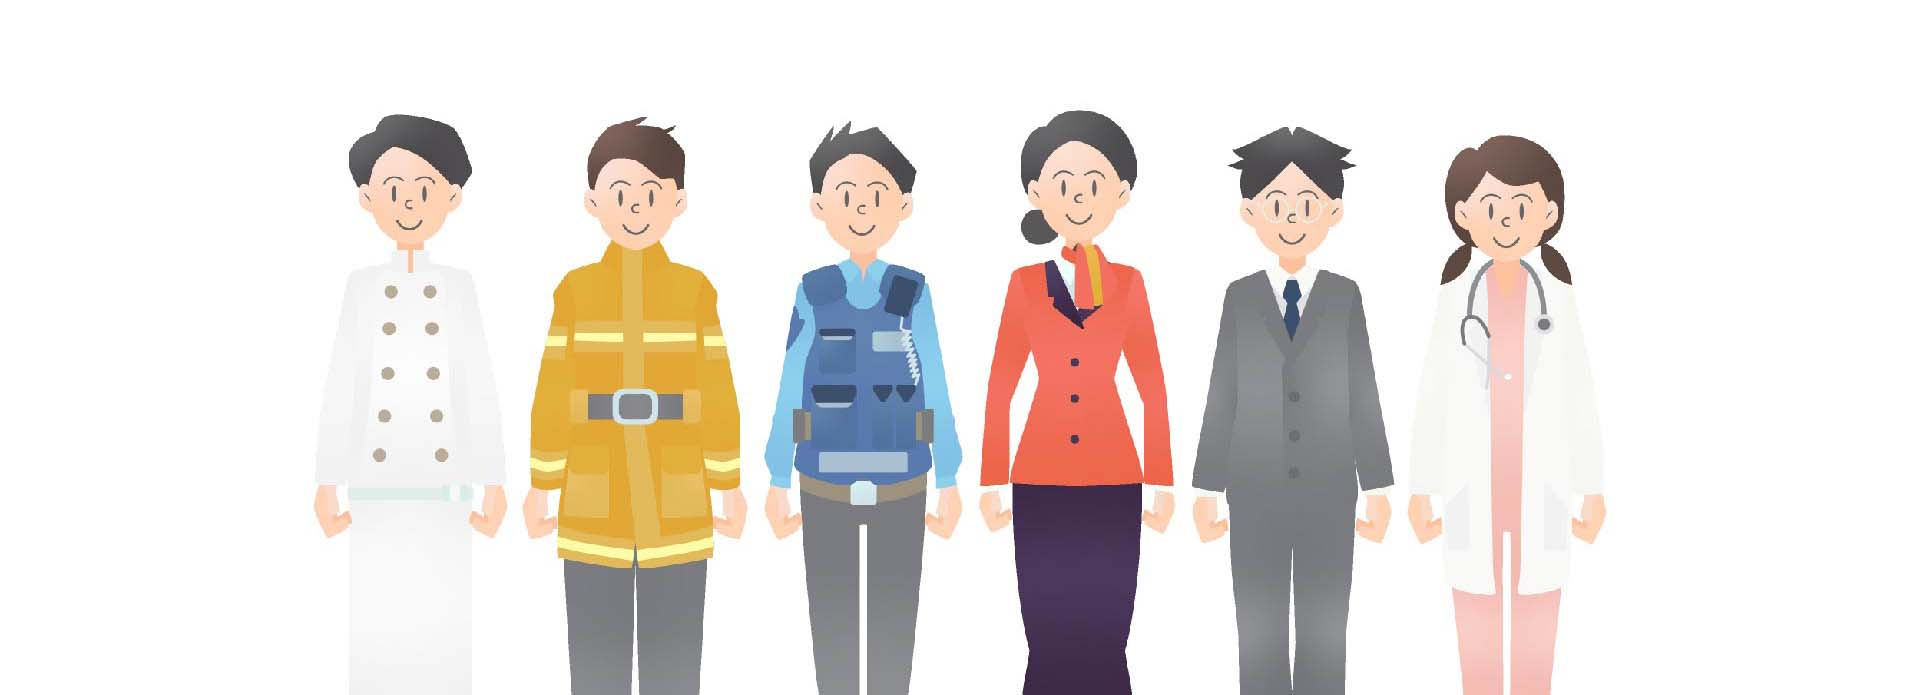 different personas for digital marketing audience targeting in Japan - Digital Marketing For Asia